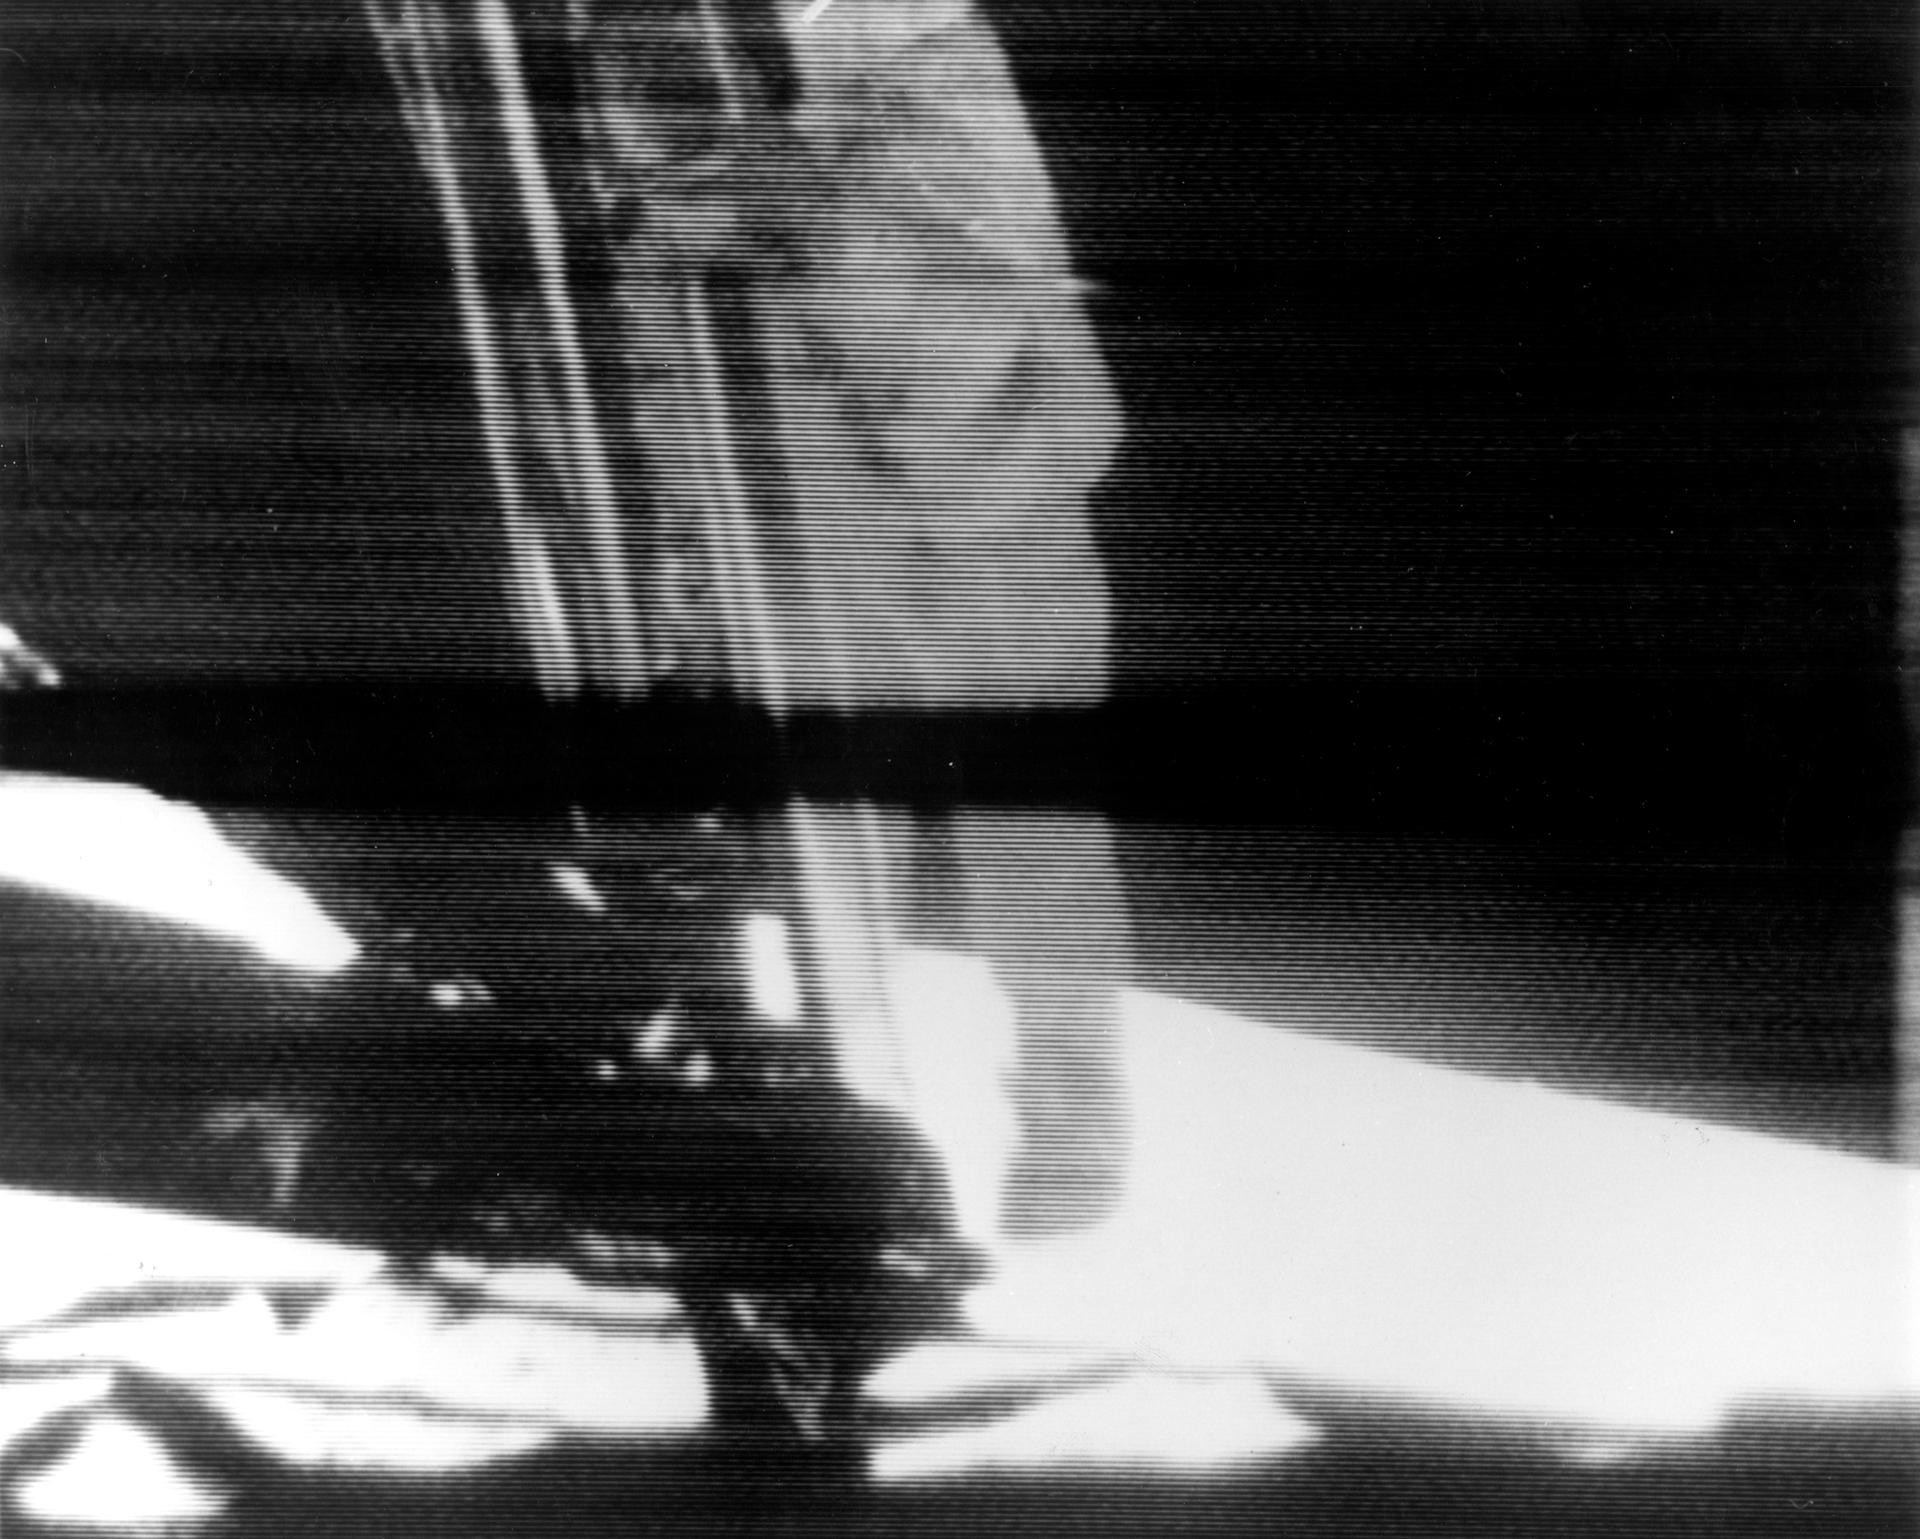 A reproduction of the television image that was broadcast to the world on 20 July. Neil Armstrong is seen descending the Lunar Module ladder, ready to set foot on the surface of the Moon. The black bar across the centre of the image is caused by an anomaly in the TV Ground Data System at Goldstone Tracking Station. Credit: NASA